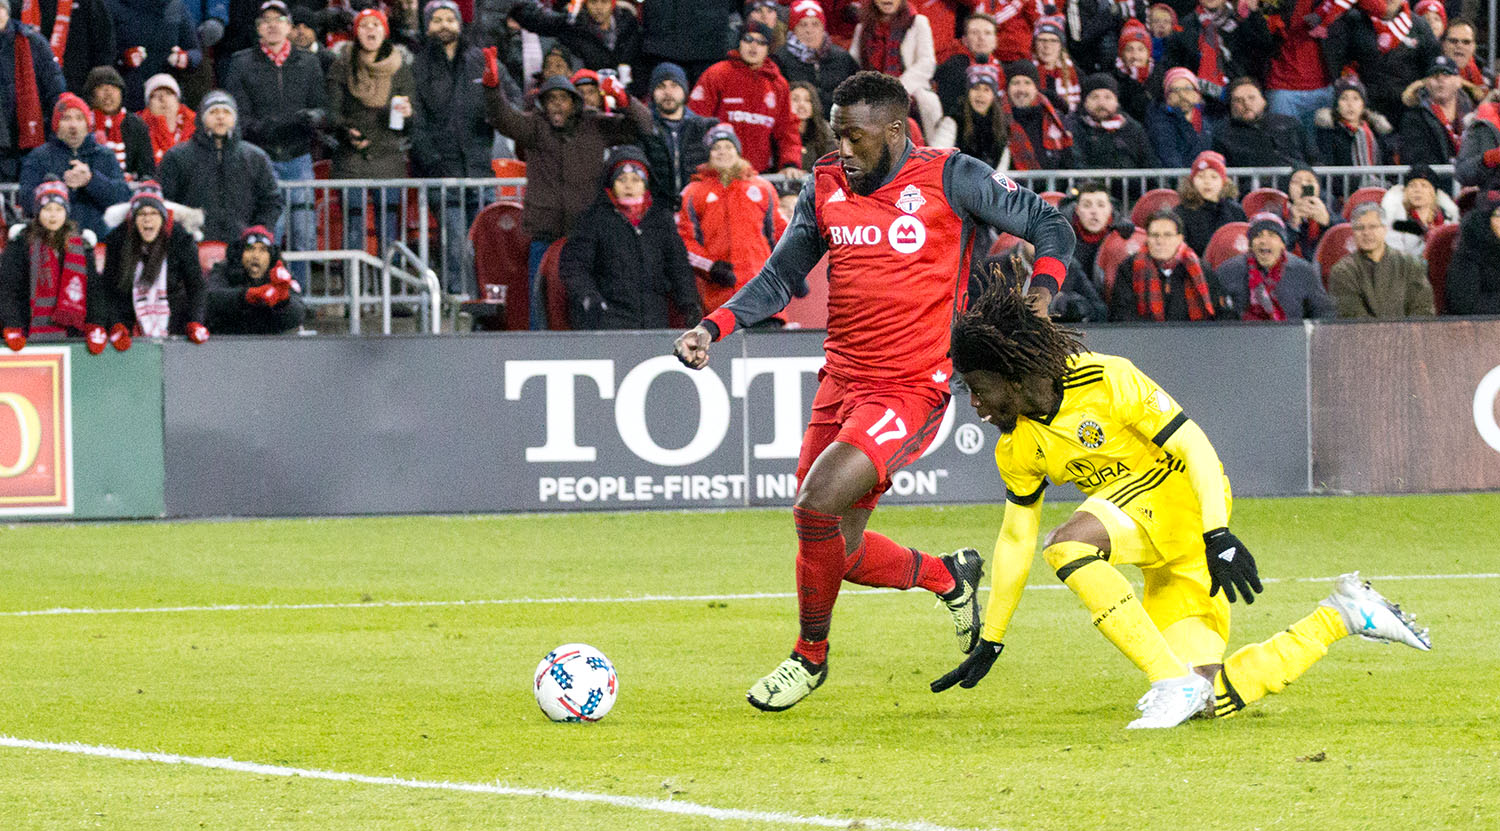 Jozy Altidore about to kick the ball into the back of the net scoring the series deciding goal at BMO Field during the 2017 Major League Soccer playoffs.Image by Dennis Marciniak of denMAR Media.